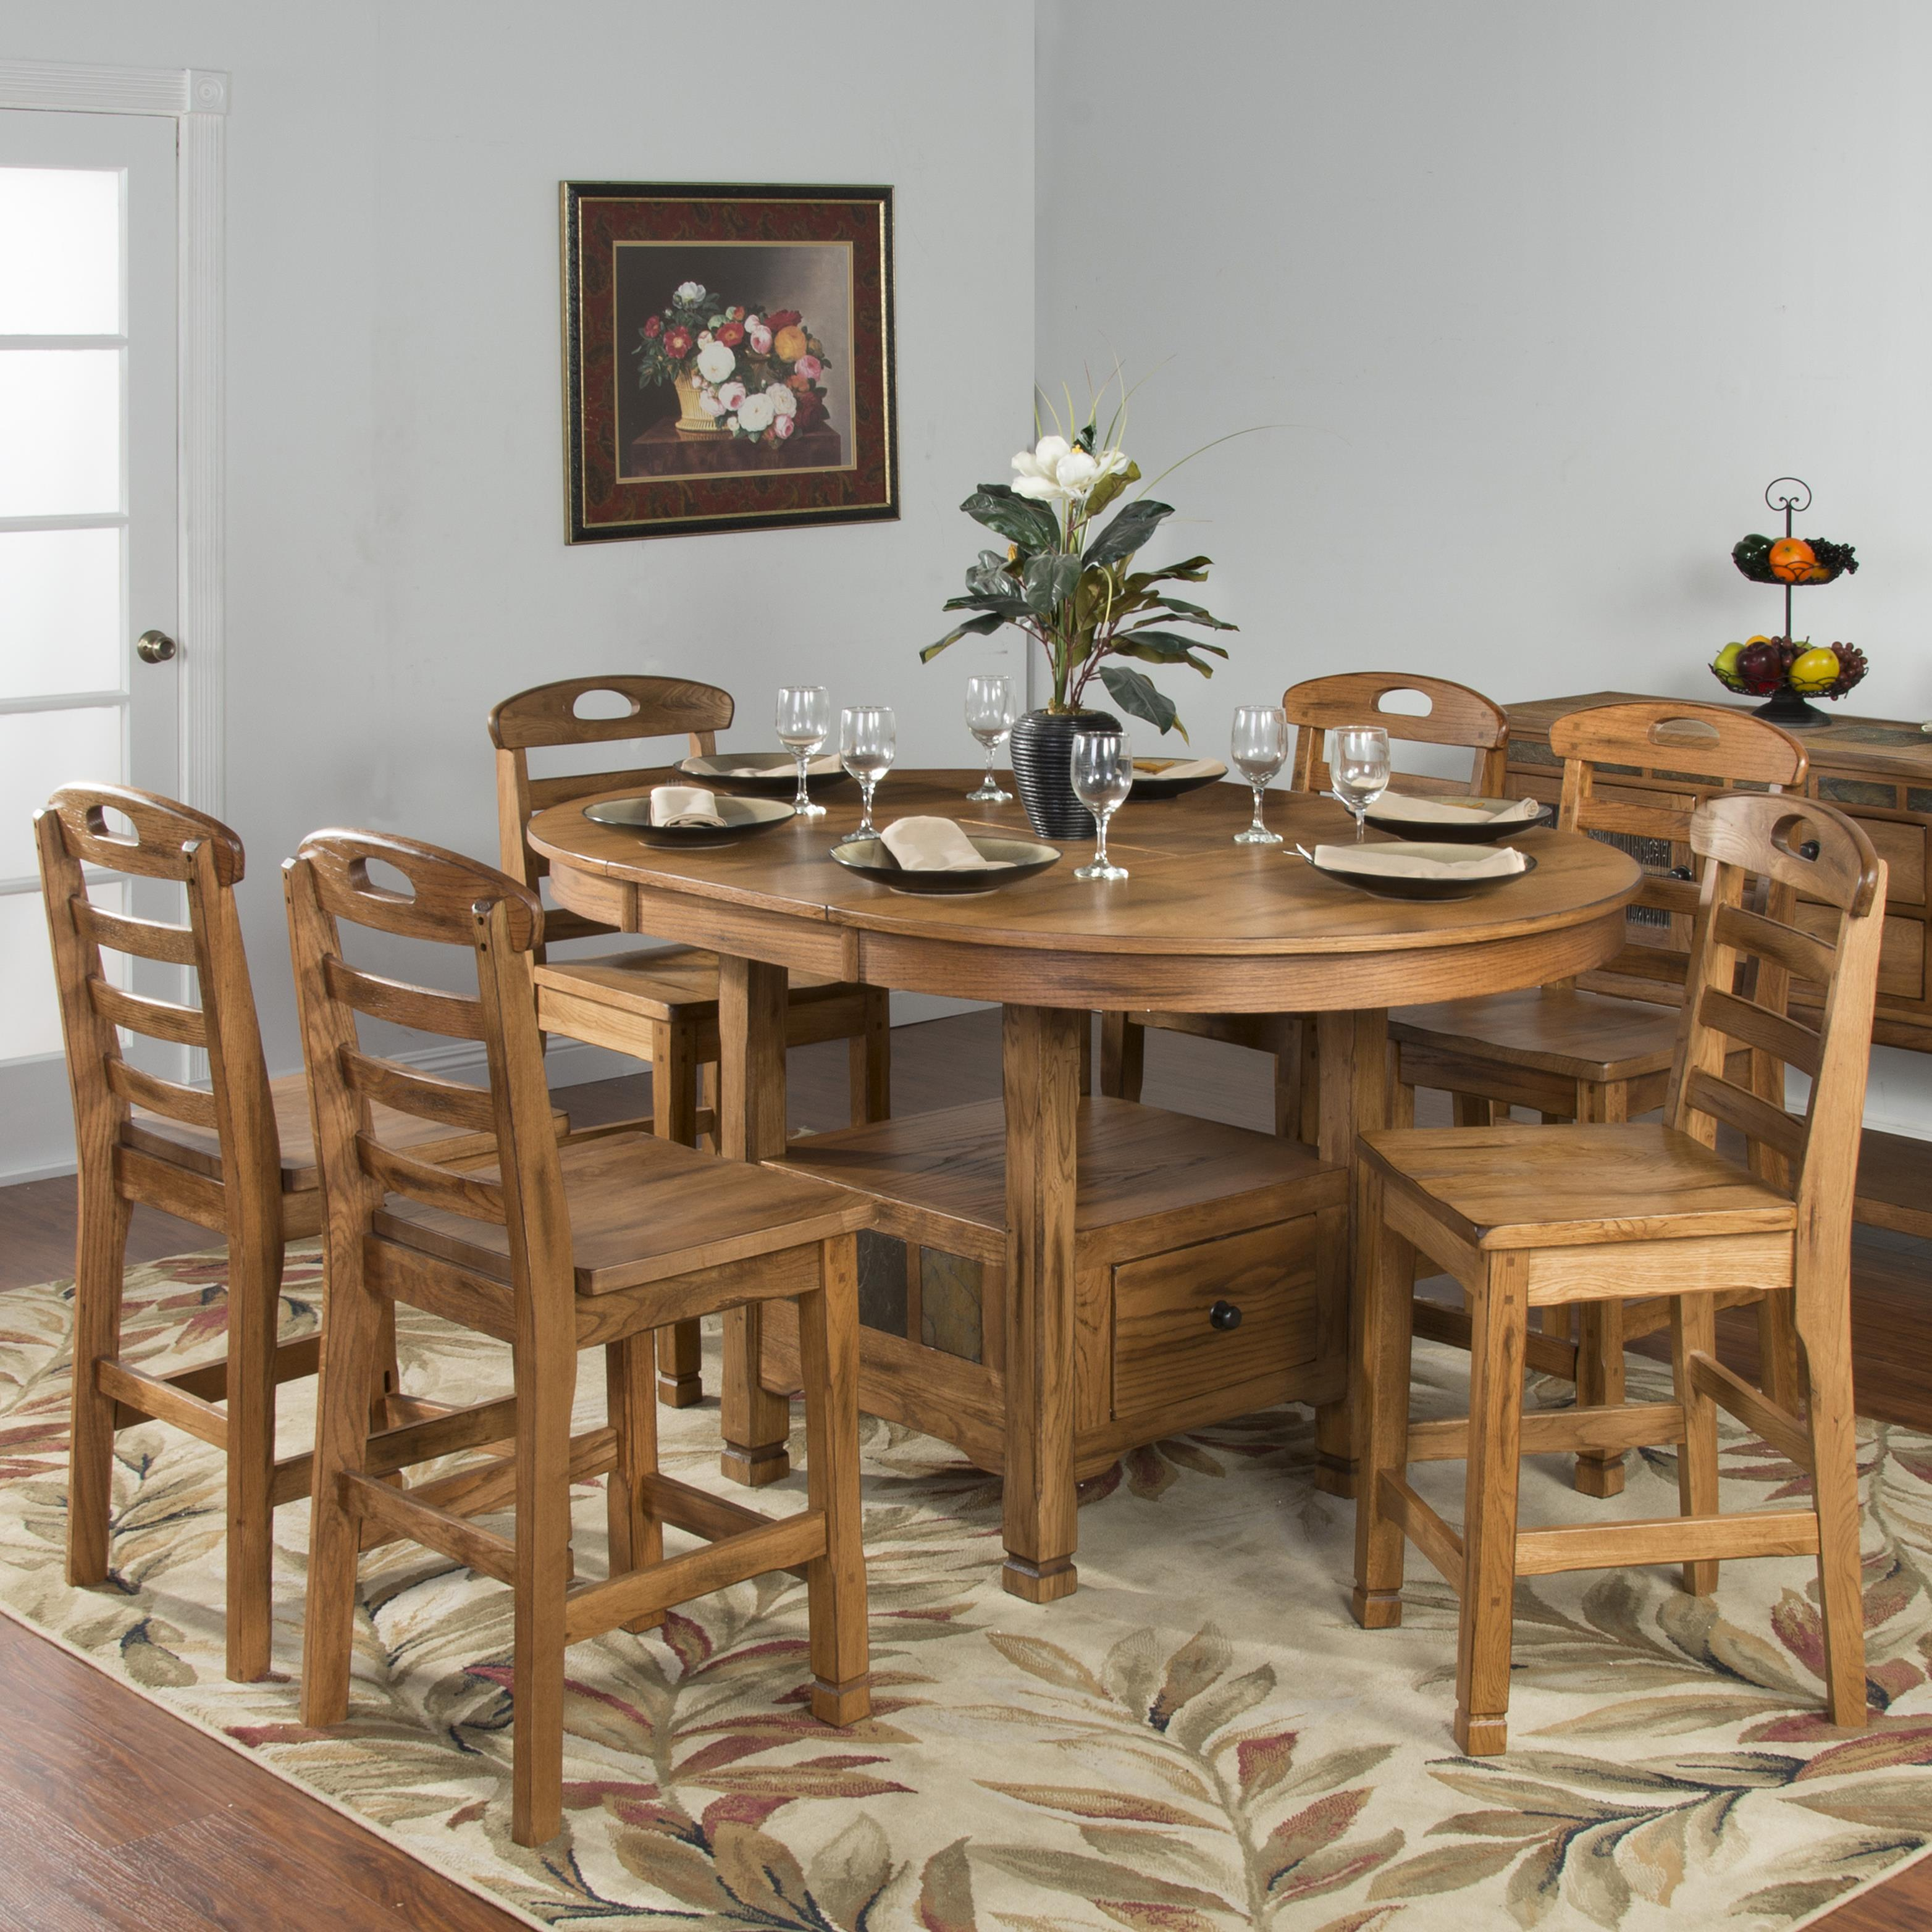 Sedona rustic oak 7 piece dining set by sunny designs Dining set design ideas